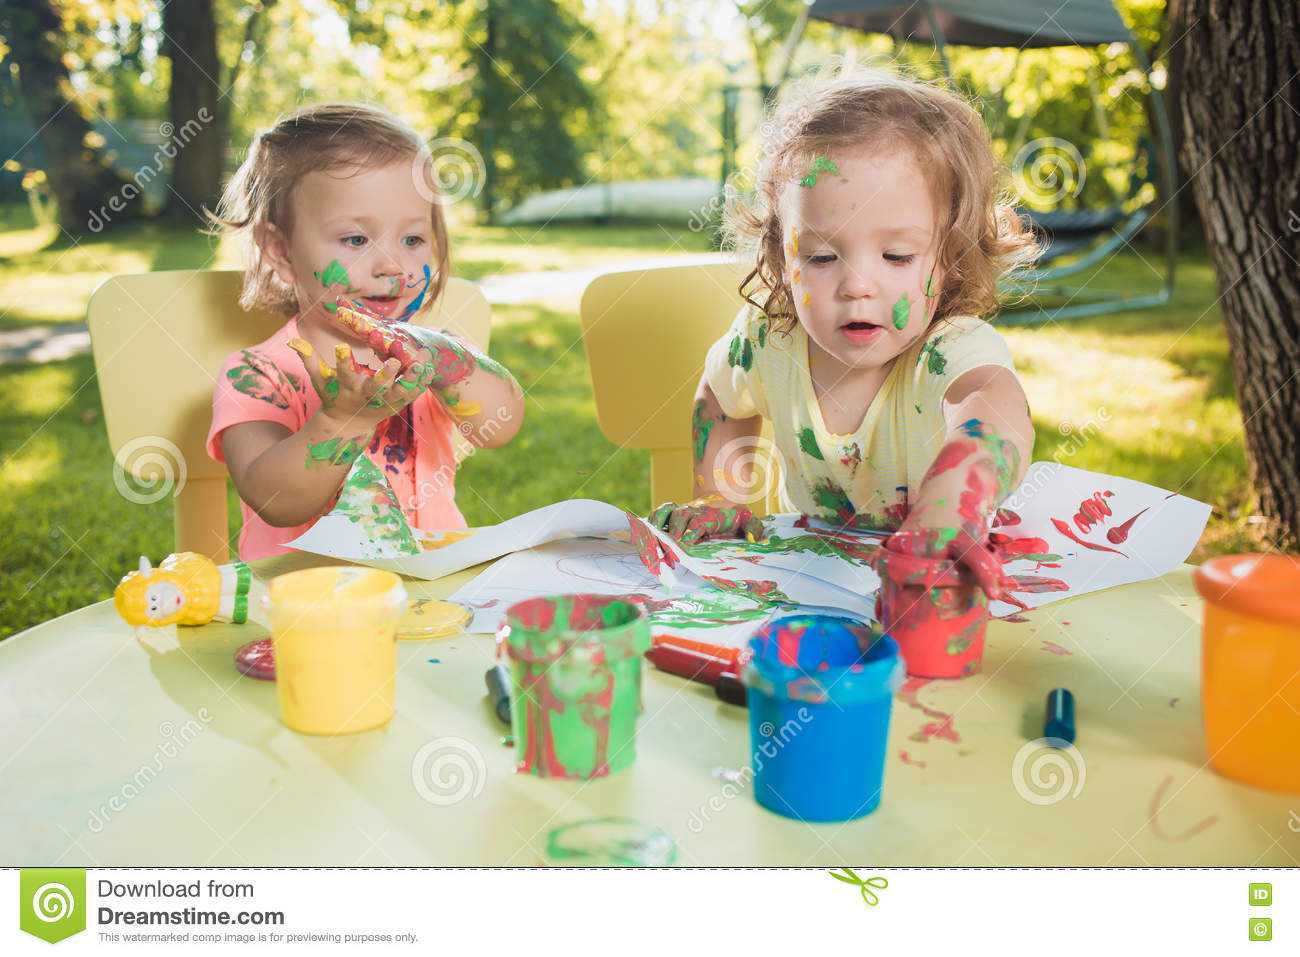 Download Two-year Old Girls Painting With Poster Paintings Together Against Green Lawn Stock Photo - Image of development, against: 74423570